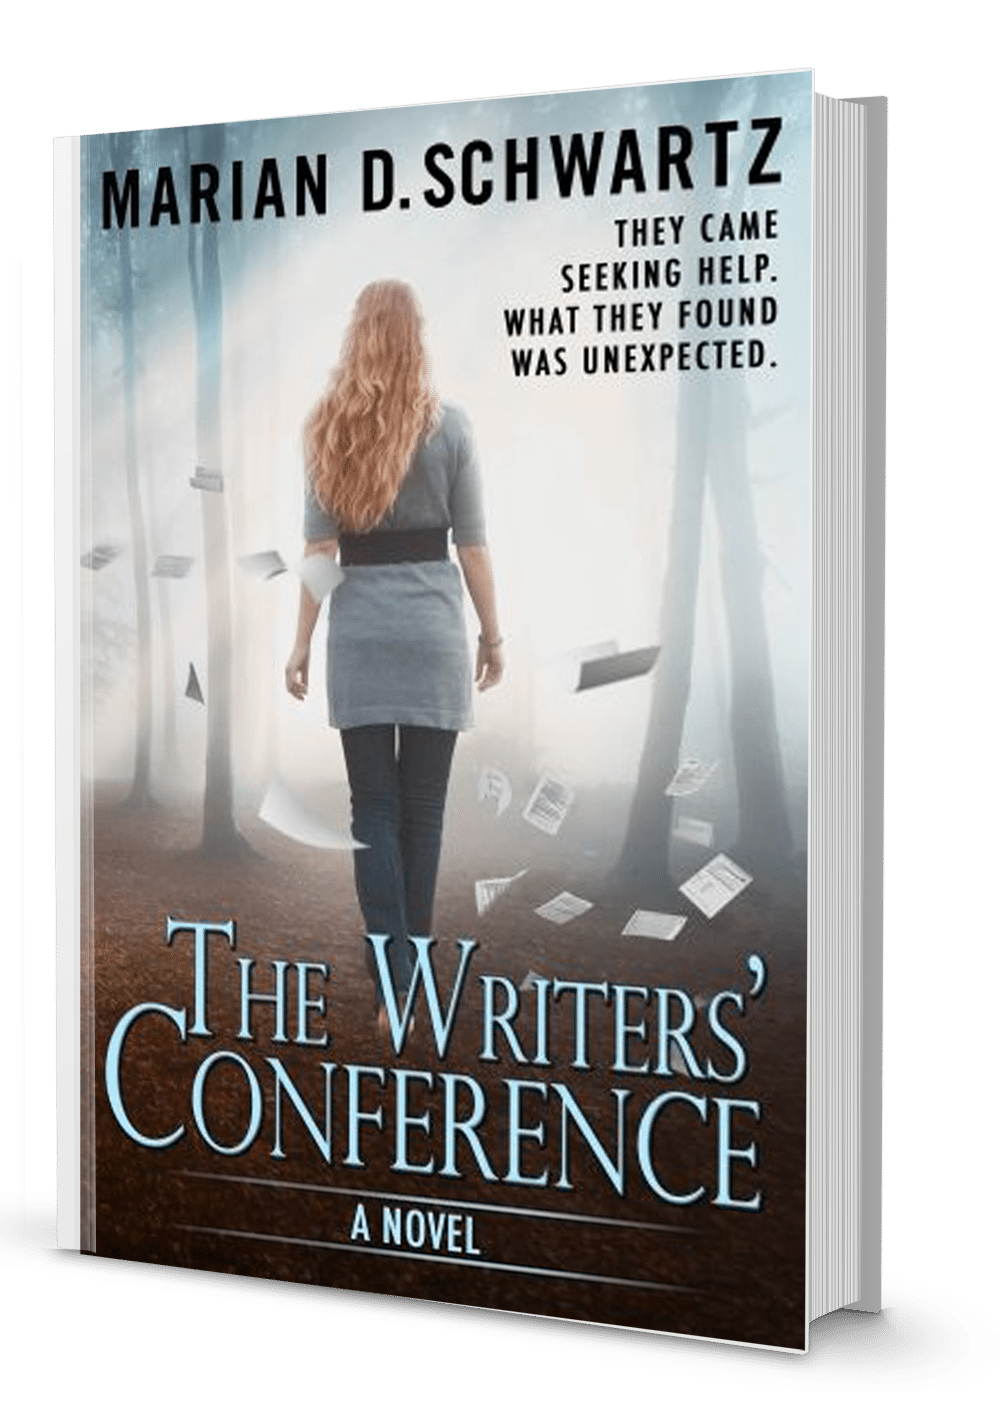 Book cover showing a woman walking alone at writers' conference with manuscript papers flying around her.